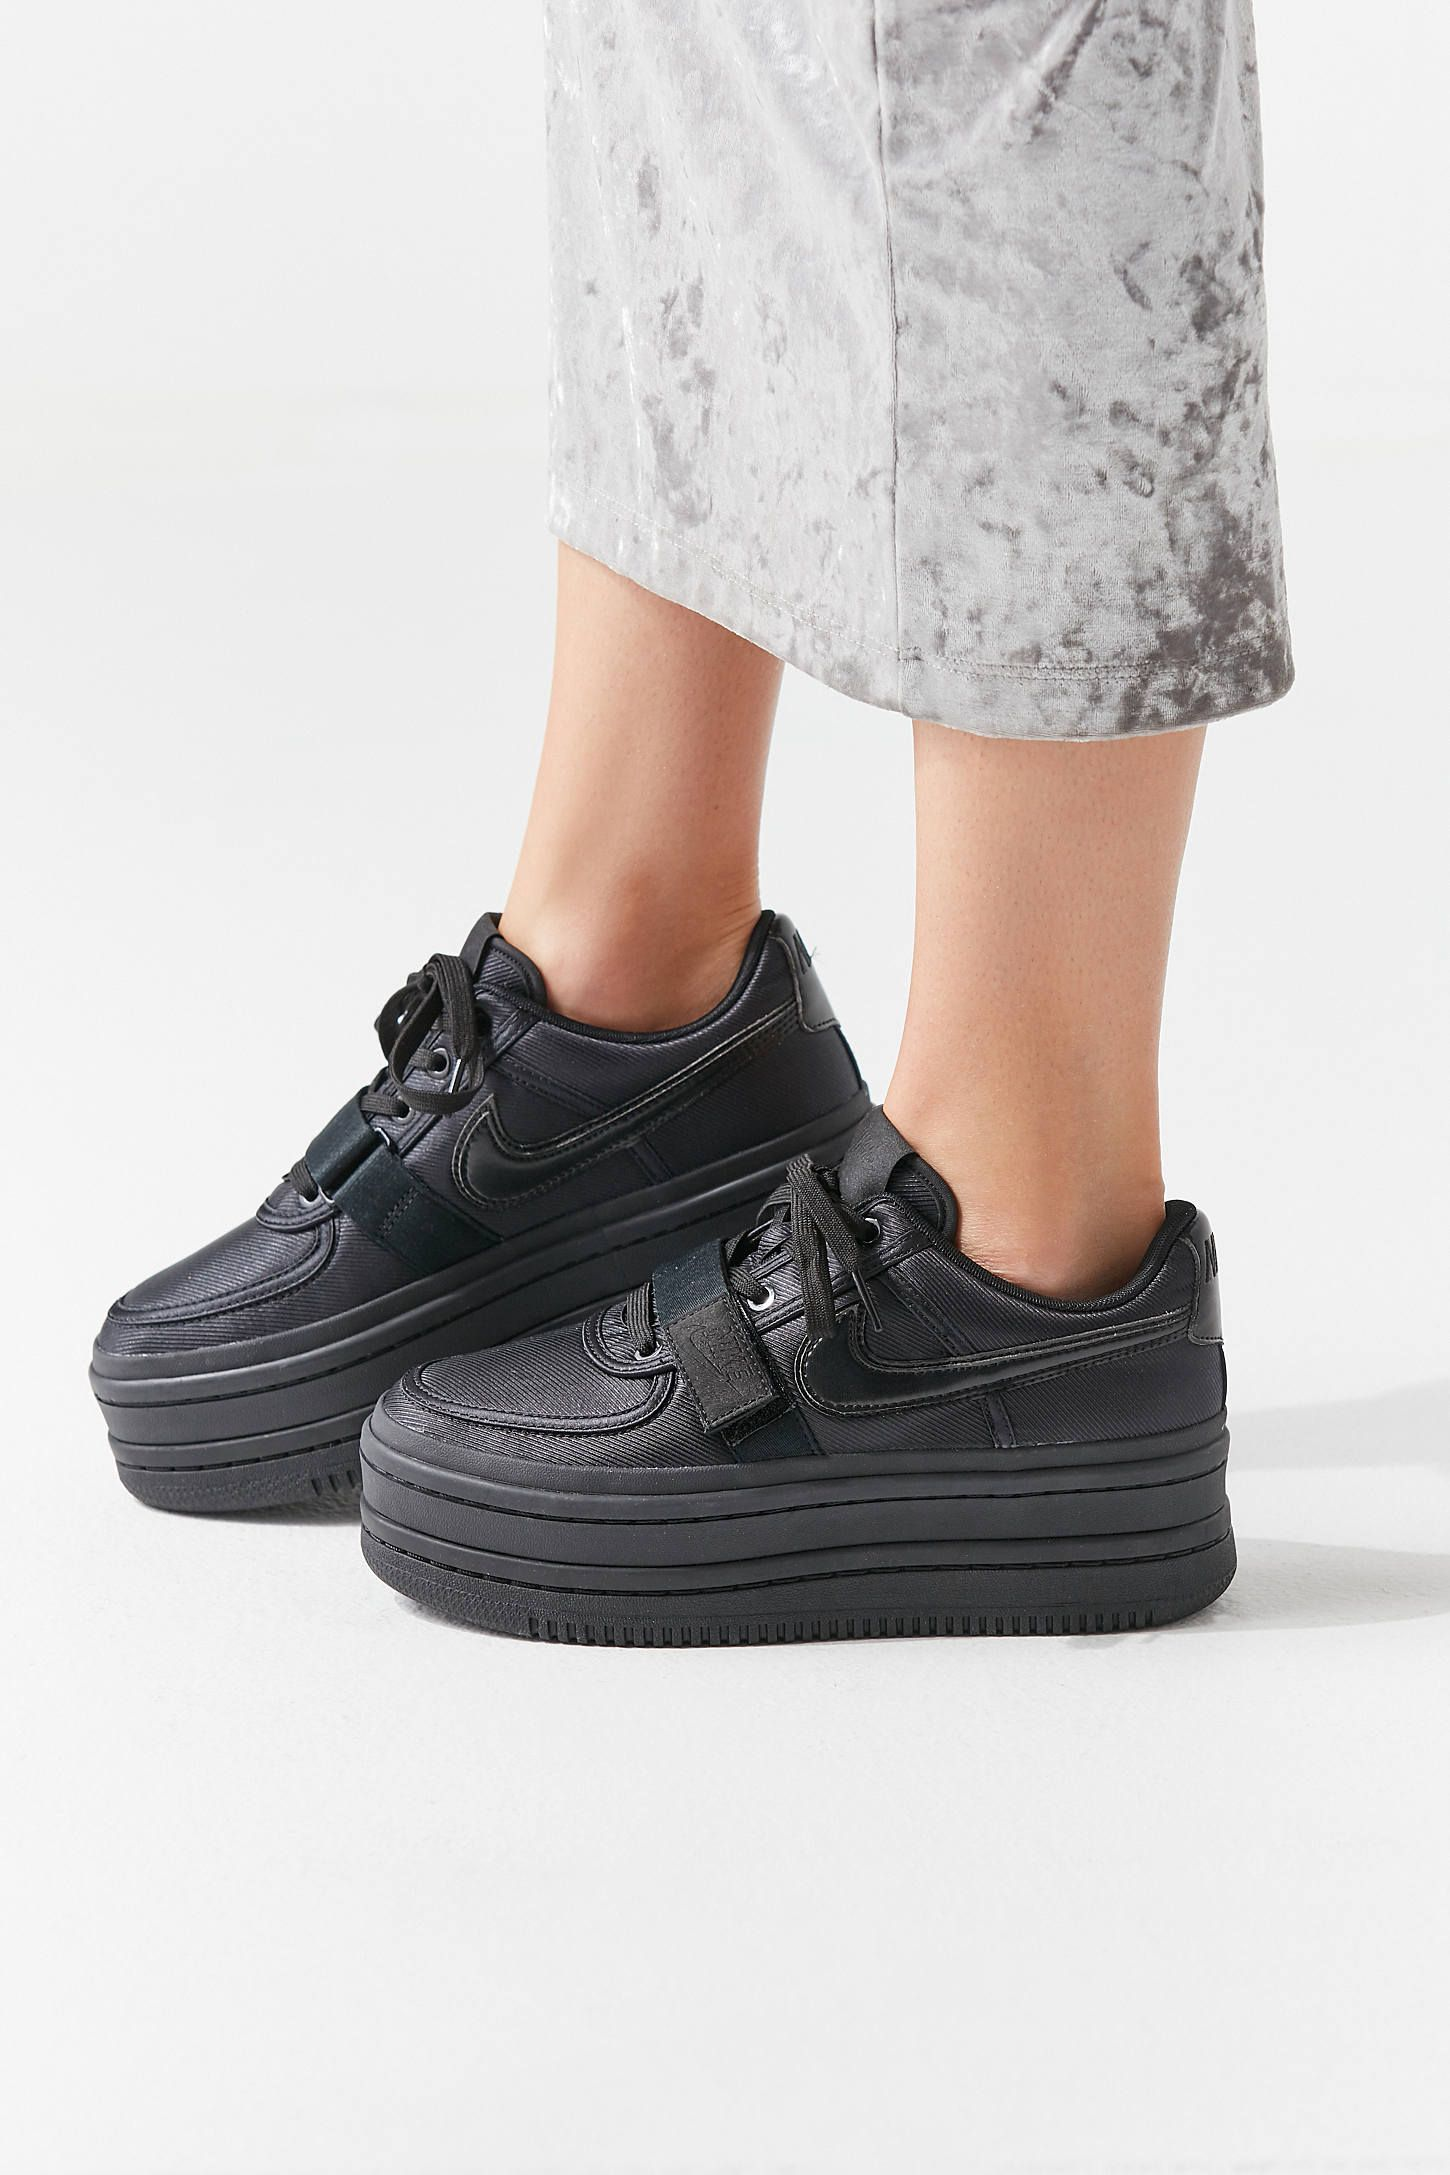 new concept 6ea47 f6553 Nike Vandal 2K Sneaker  Urban Outfitters